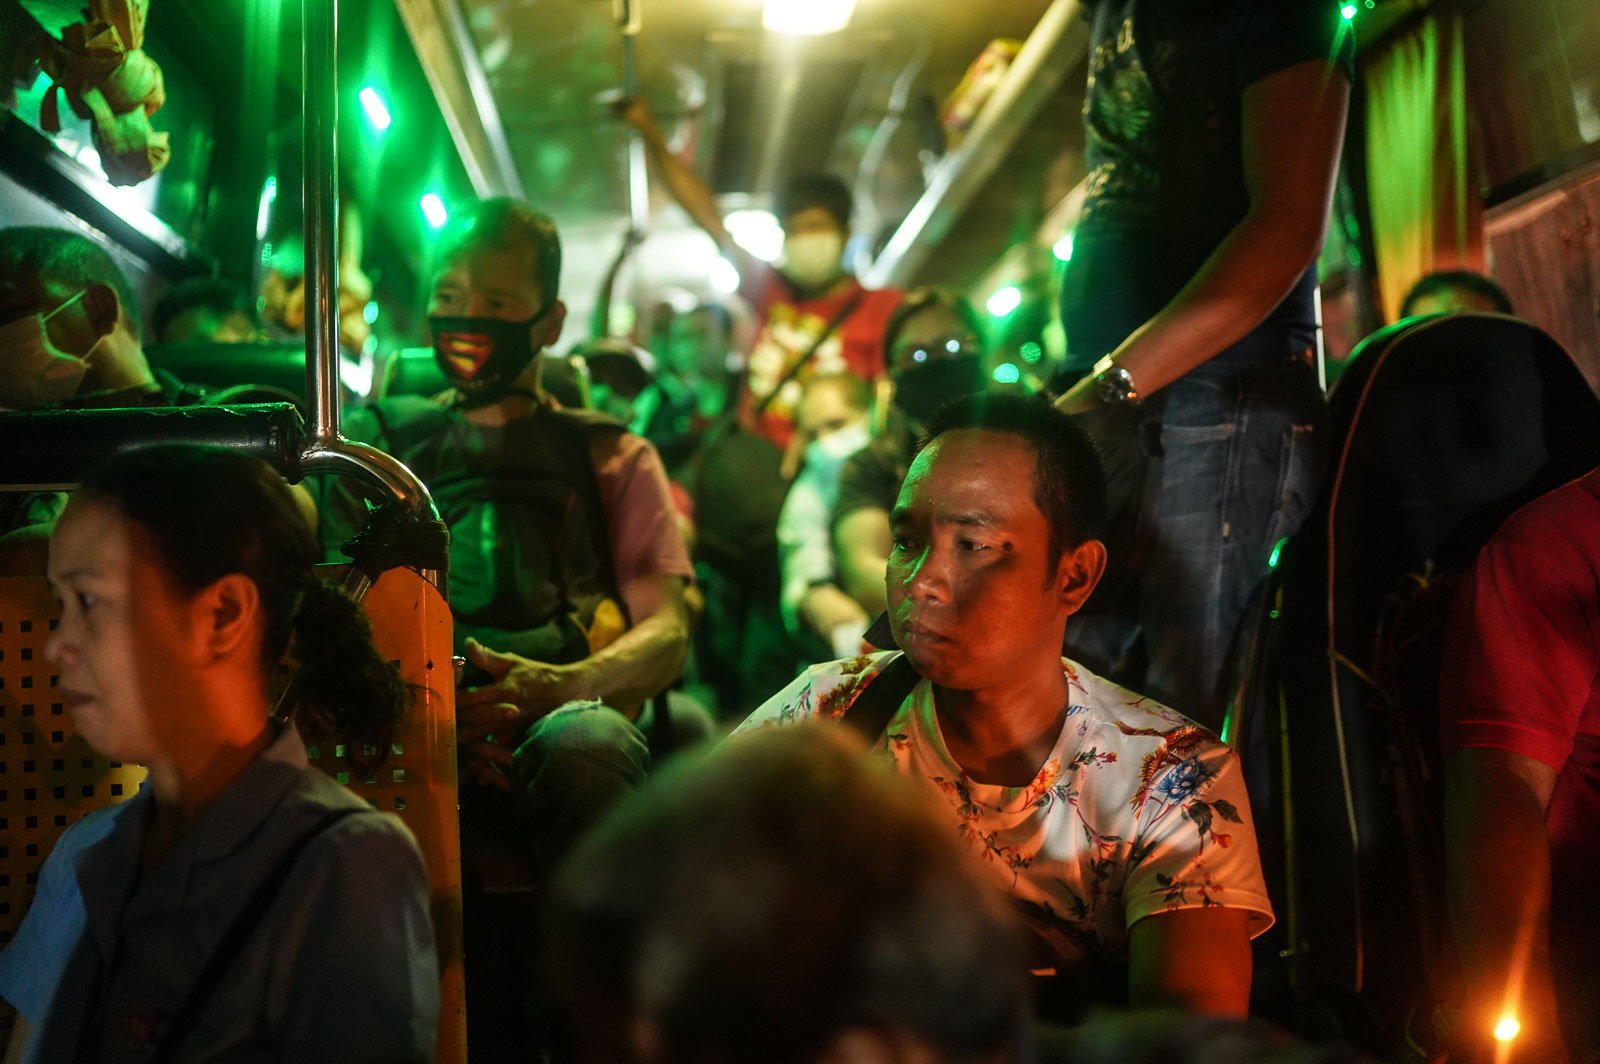 TRANSIT. Policemen at the Susana Heights-SLEX checkpoint check the body temperature and identification cards of commuters entering Metro Manila on March 16, 2020. Photo by Martin San Diego/Rappler